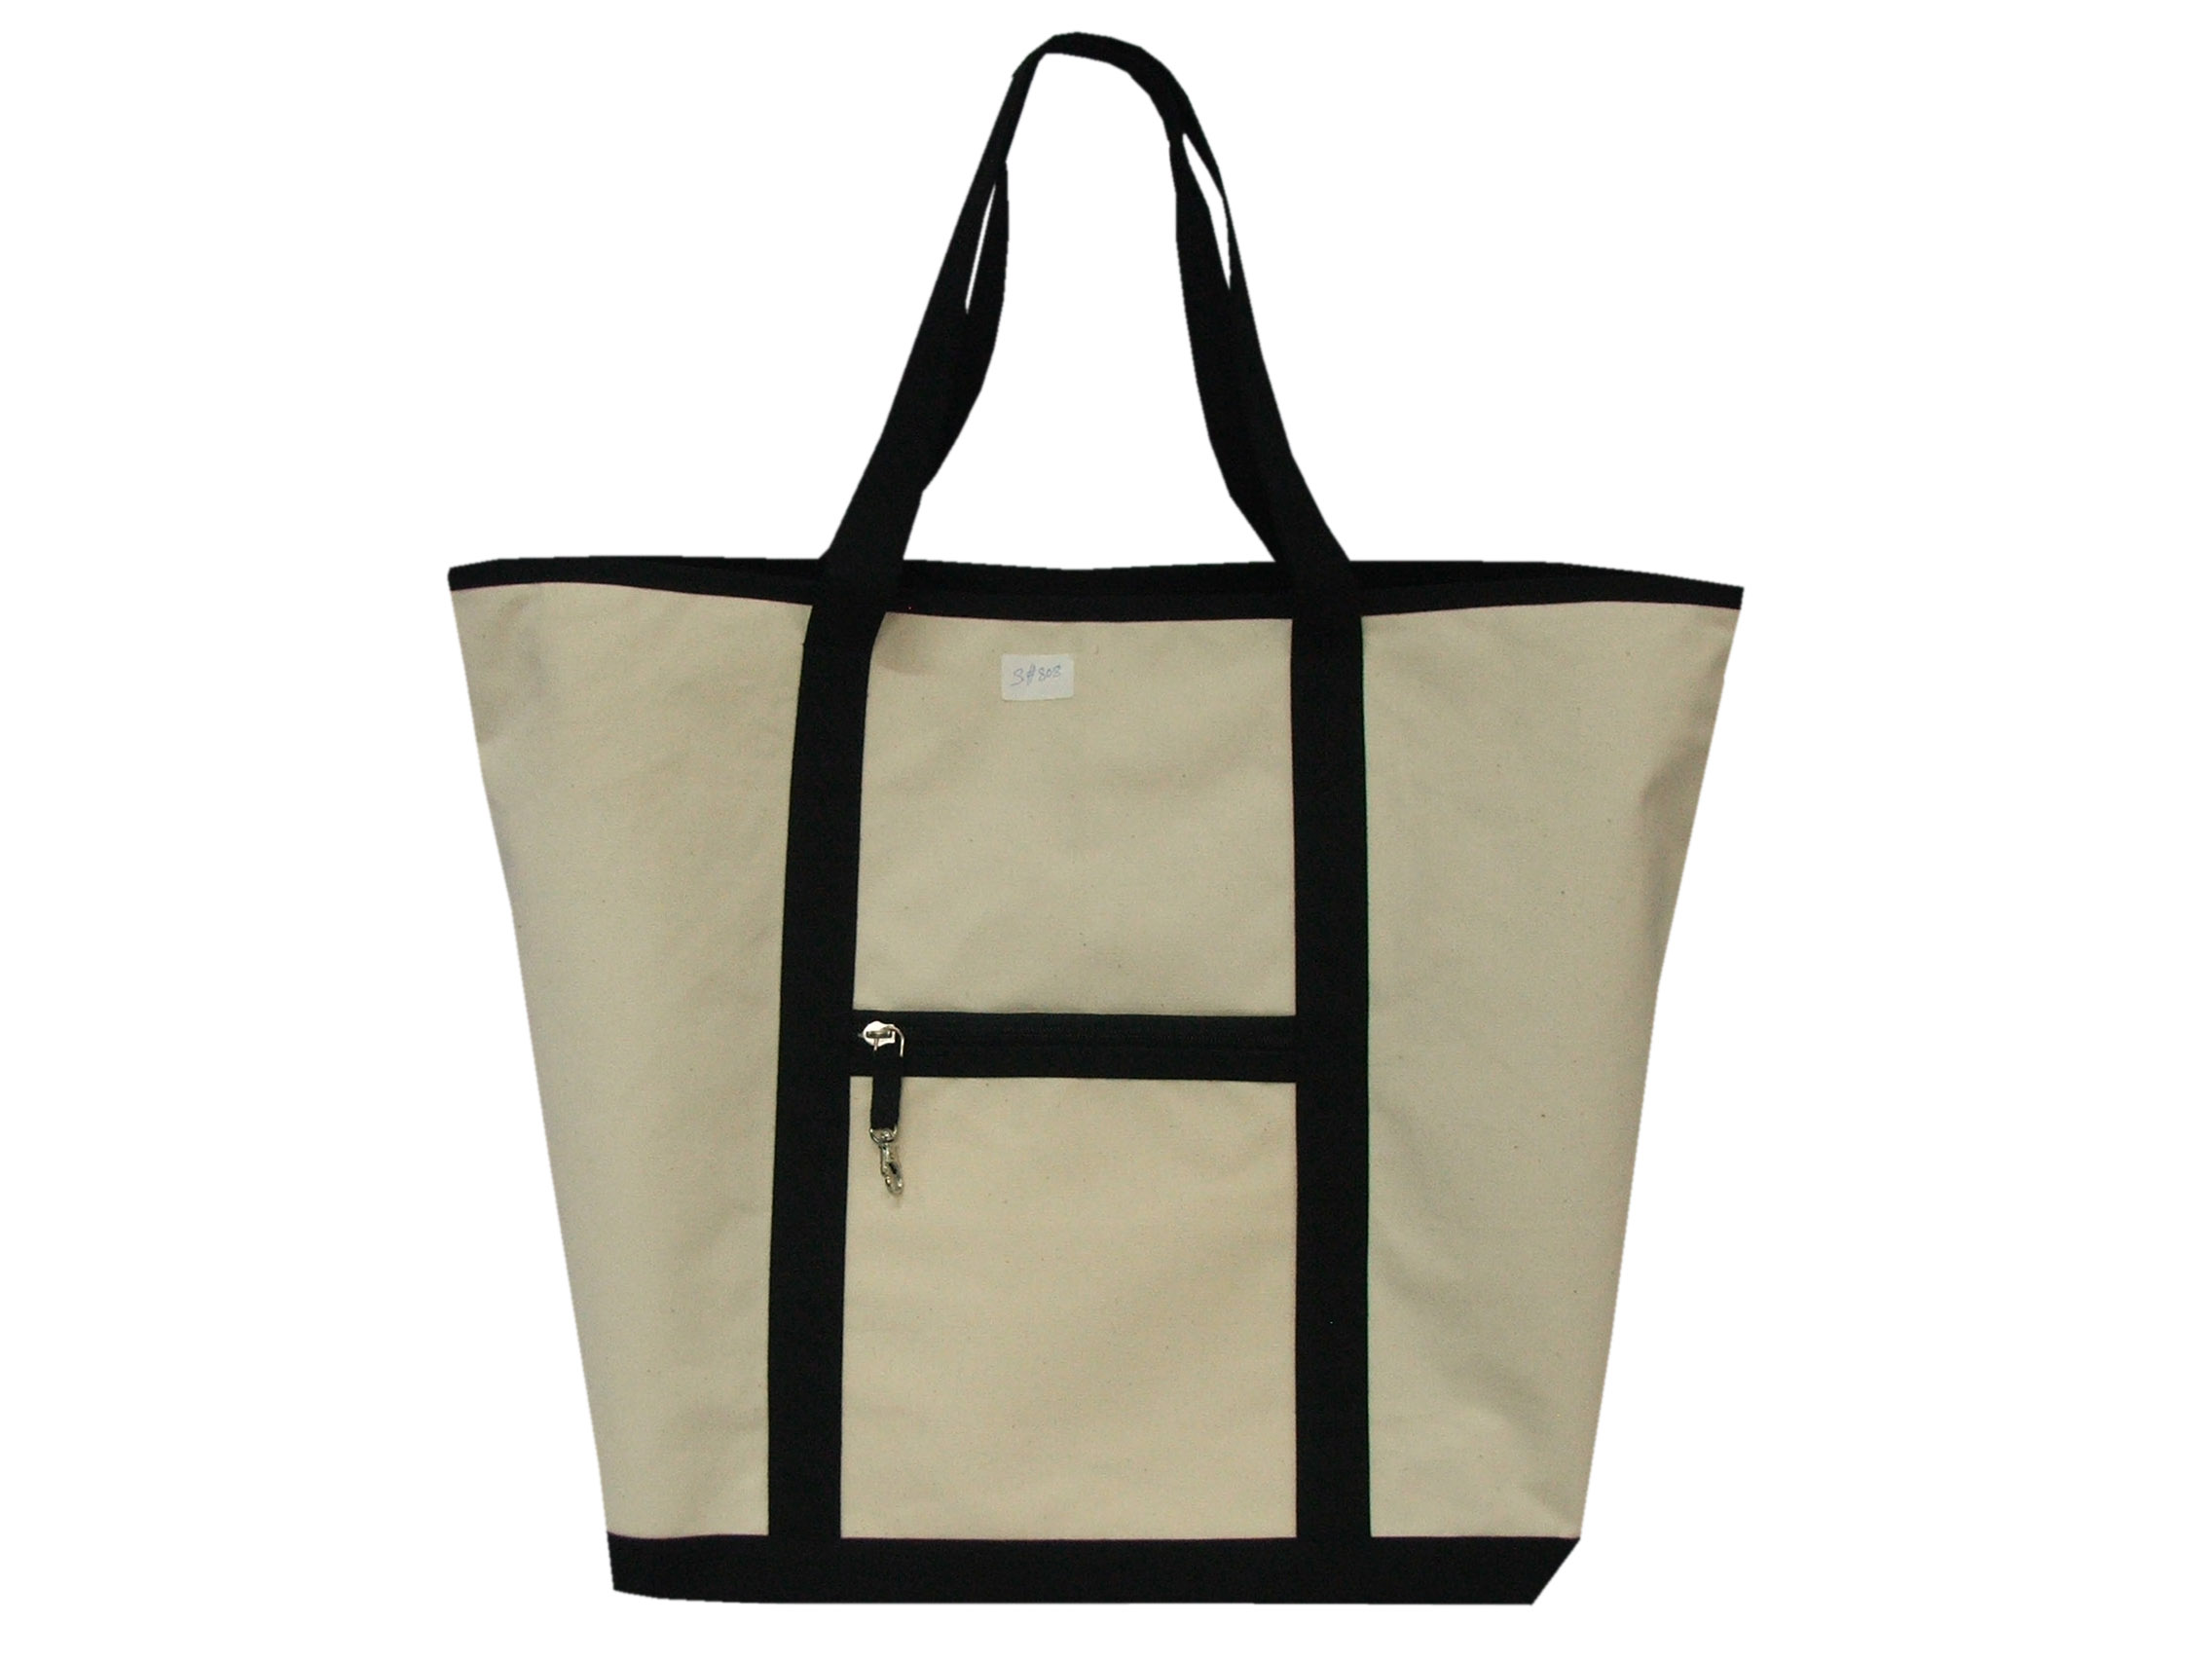 Deluxe Organic Canvas Tote Bag